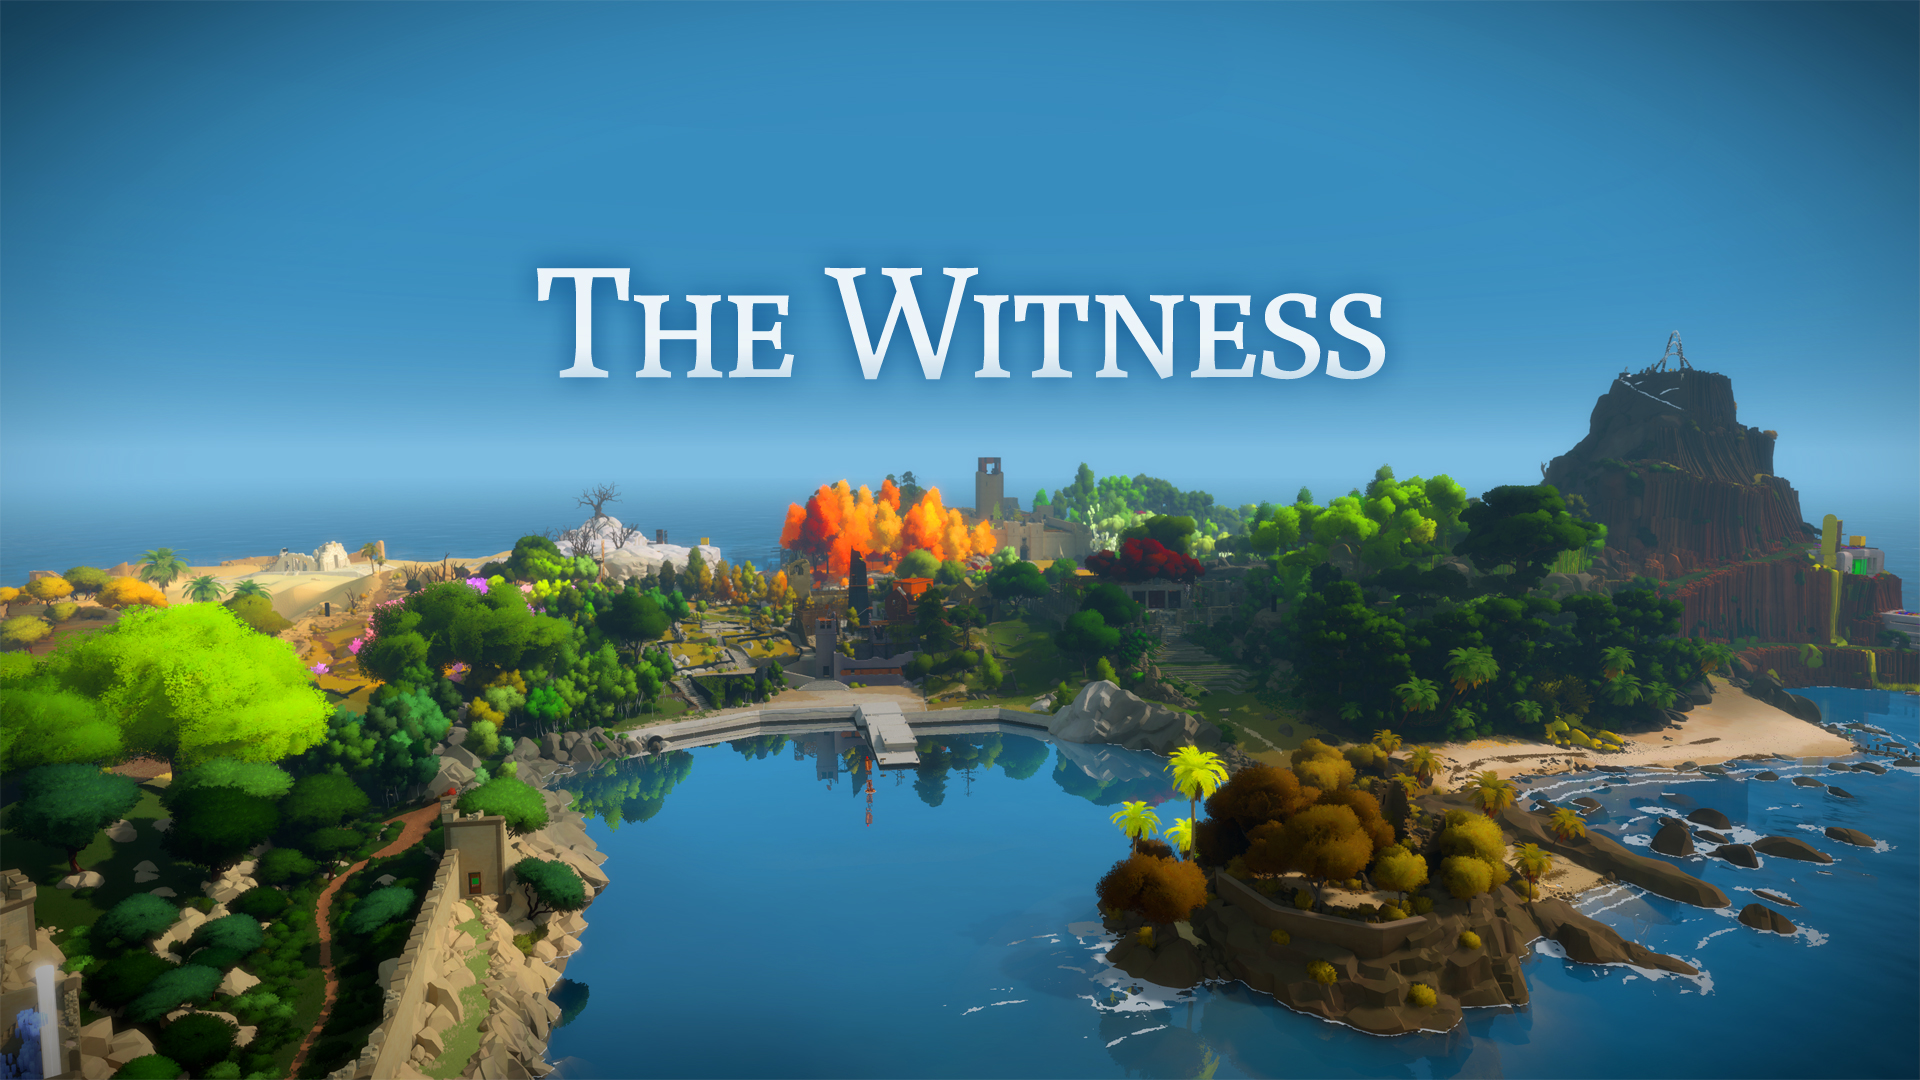 https://media.playstation.com/is/image/SCEA/the-witness-listing-thumb-01-ps4-us-26jan16?$Icon$